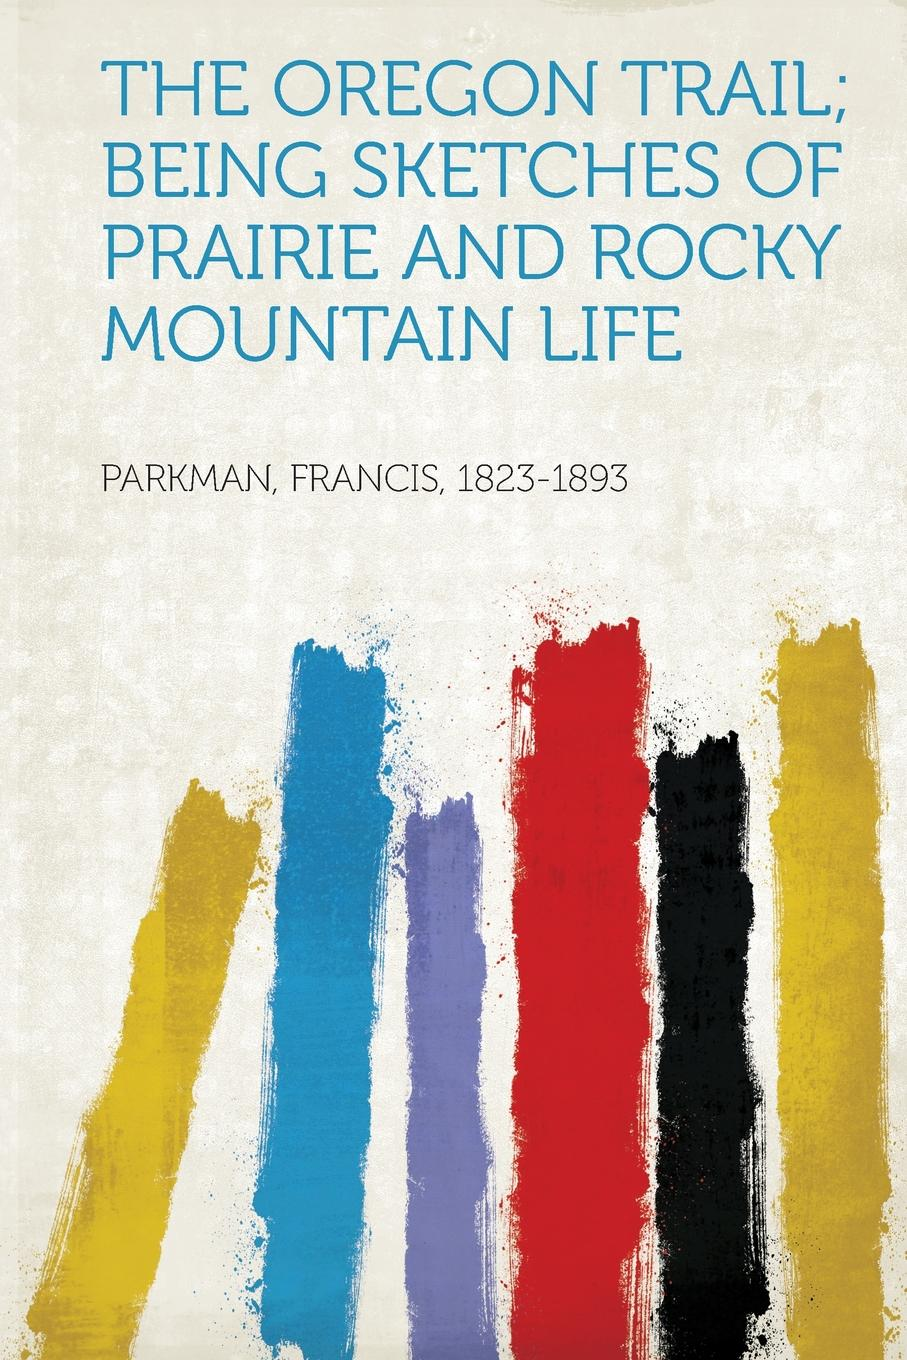 Parkman Francis 1823-1893 The Oregon Trail; Being Sketches of Prairie and Rocky Mountain Life francis parkman the oregon trail sketches of prairie and rocky mountain life